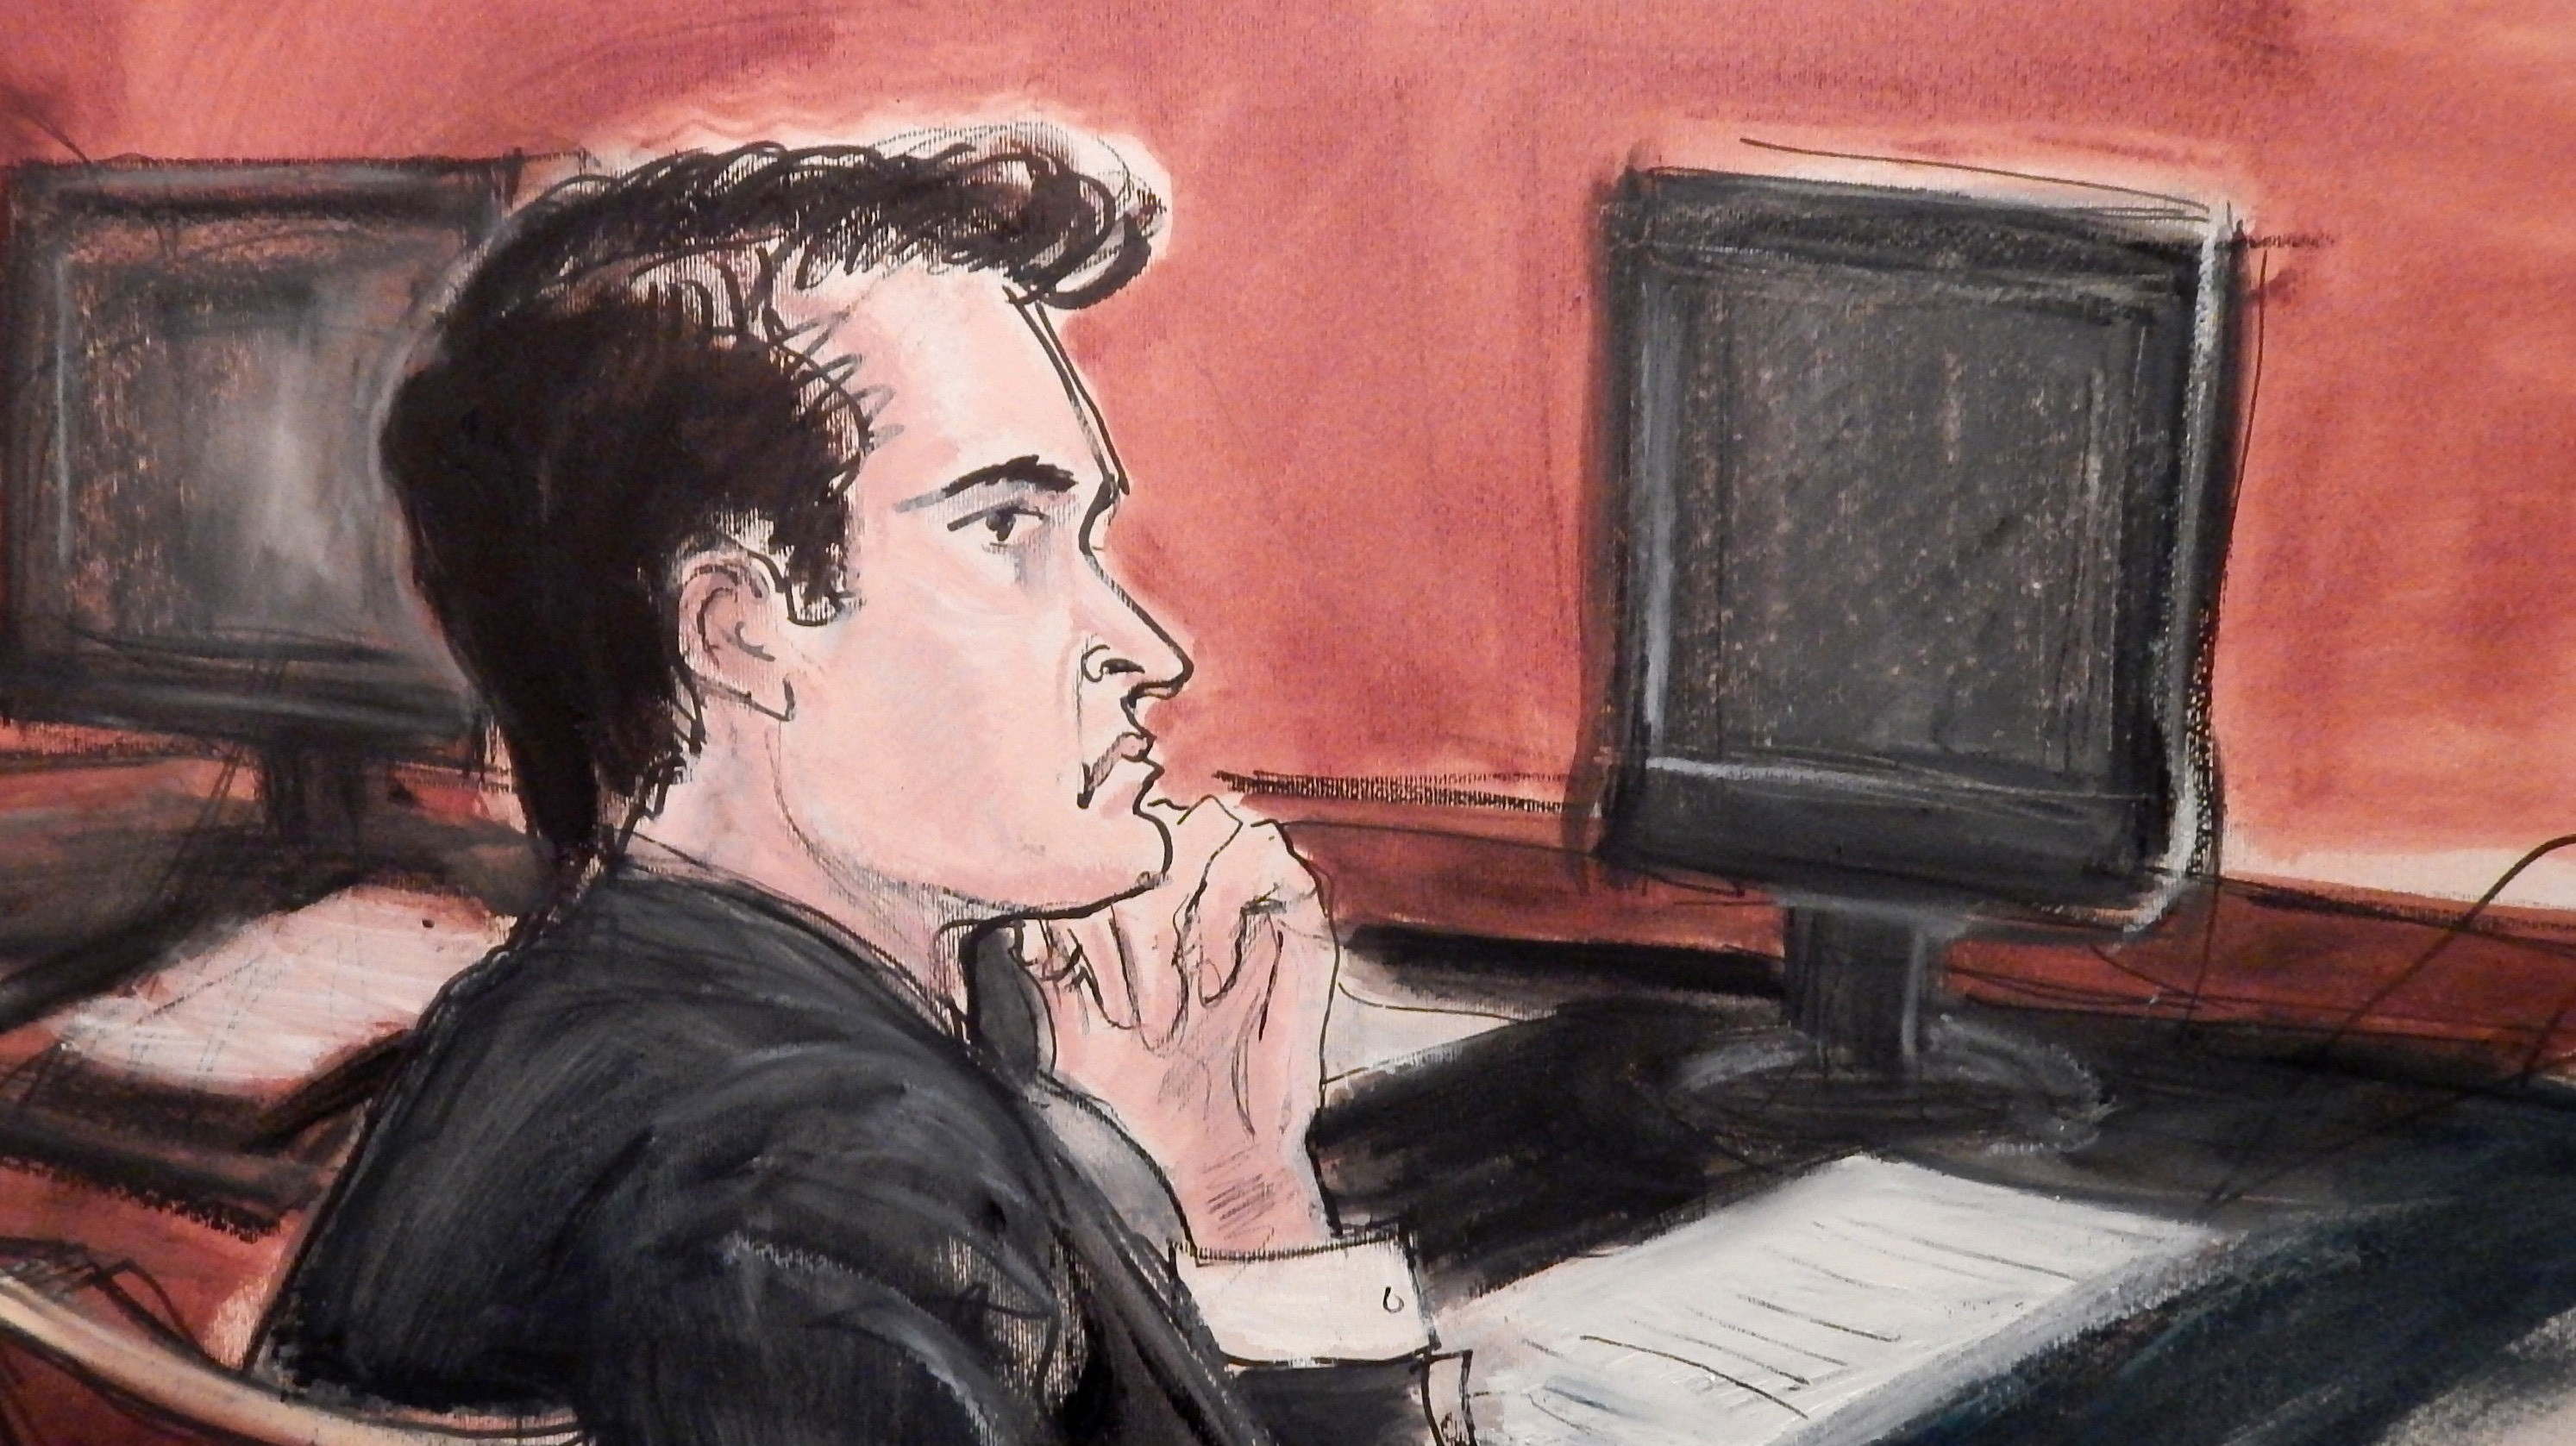 Ross Ulbricht Admits to Founding Silk Road — but Claims He's Not 'Dread Pirate Roberts'